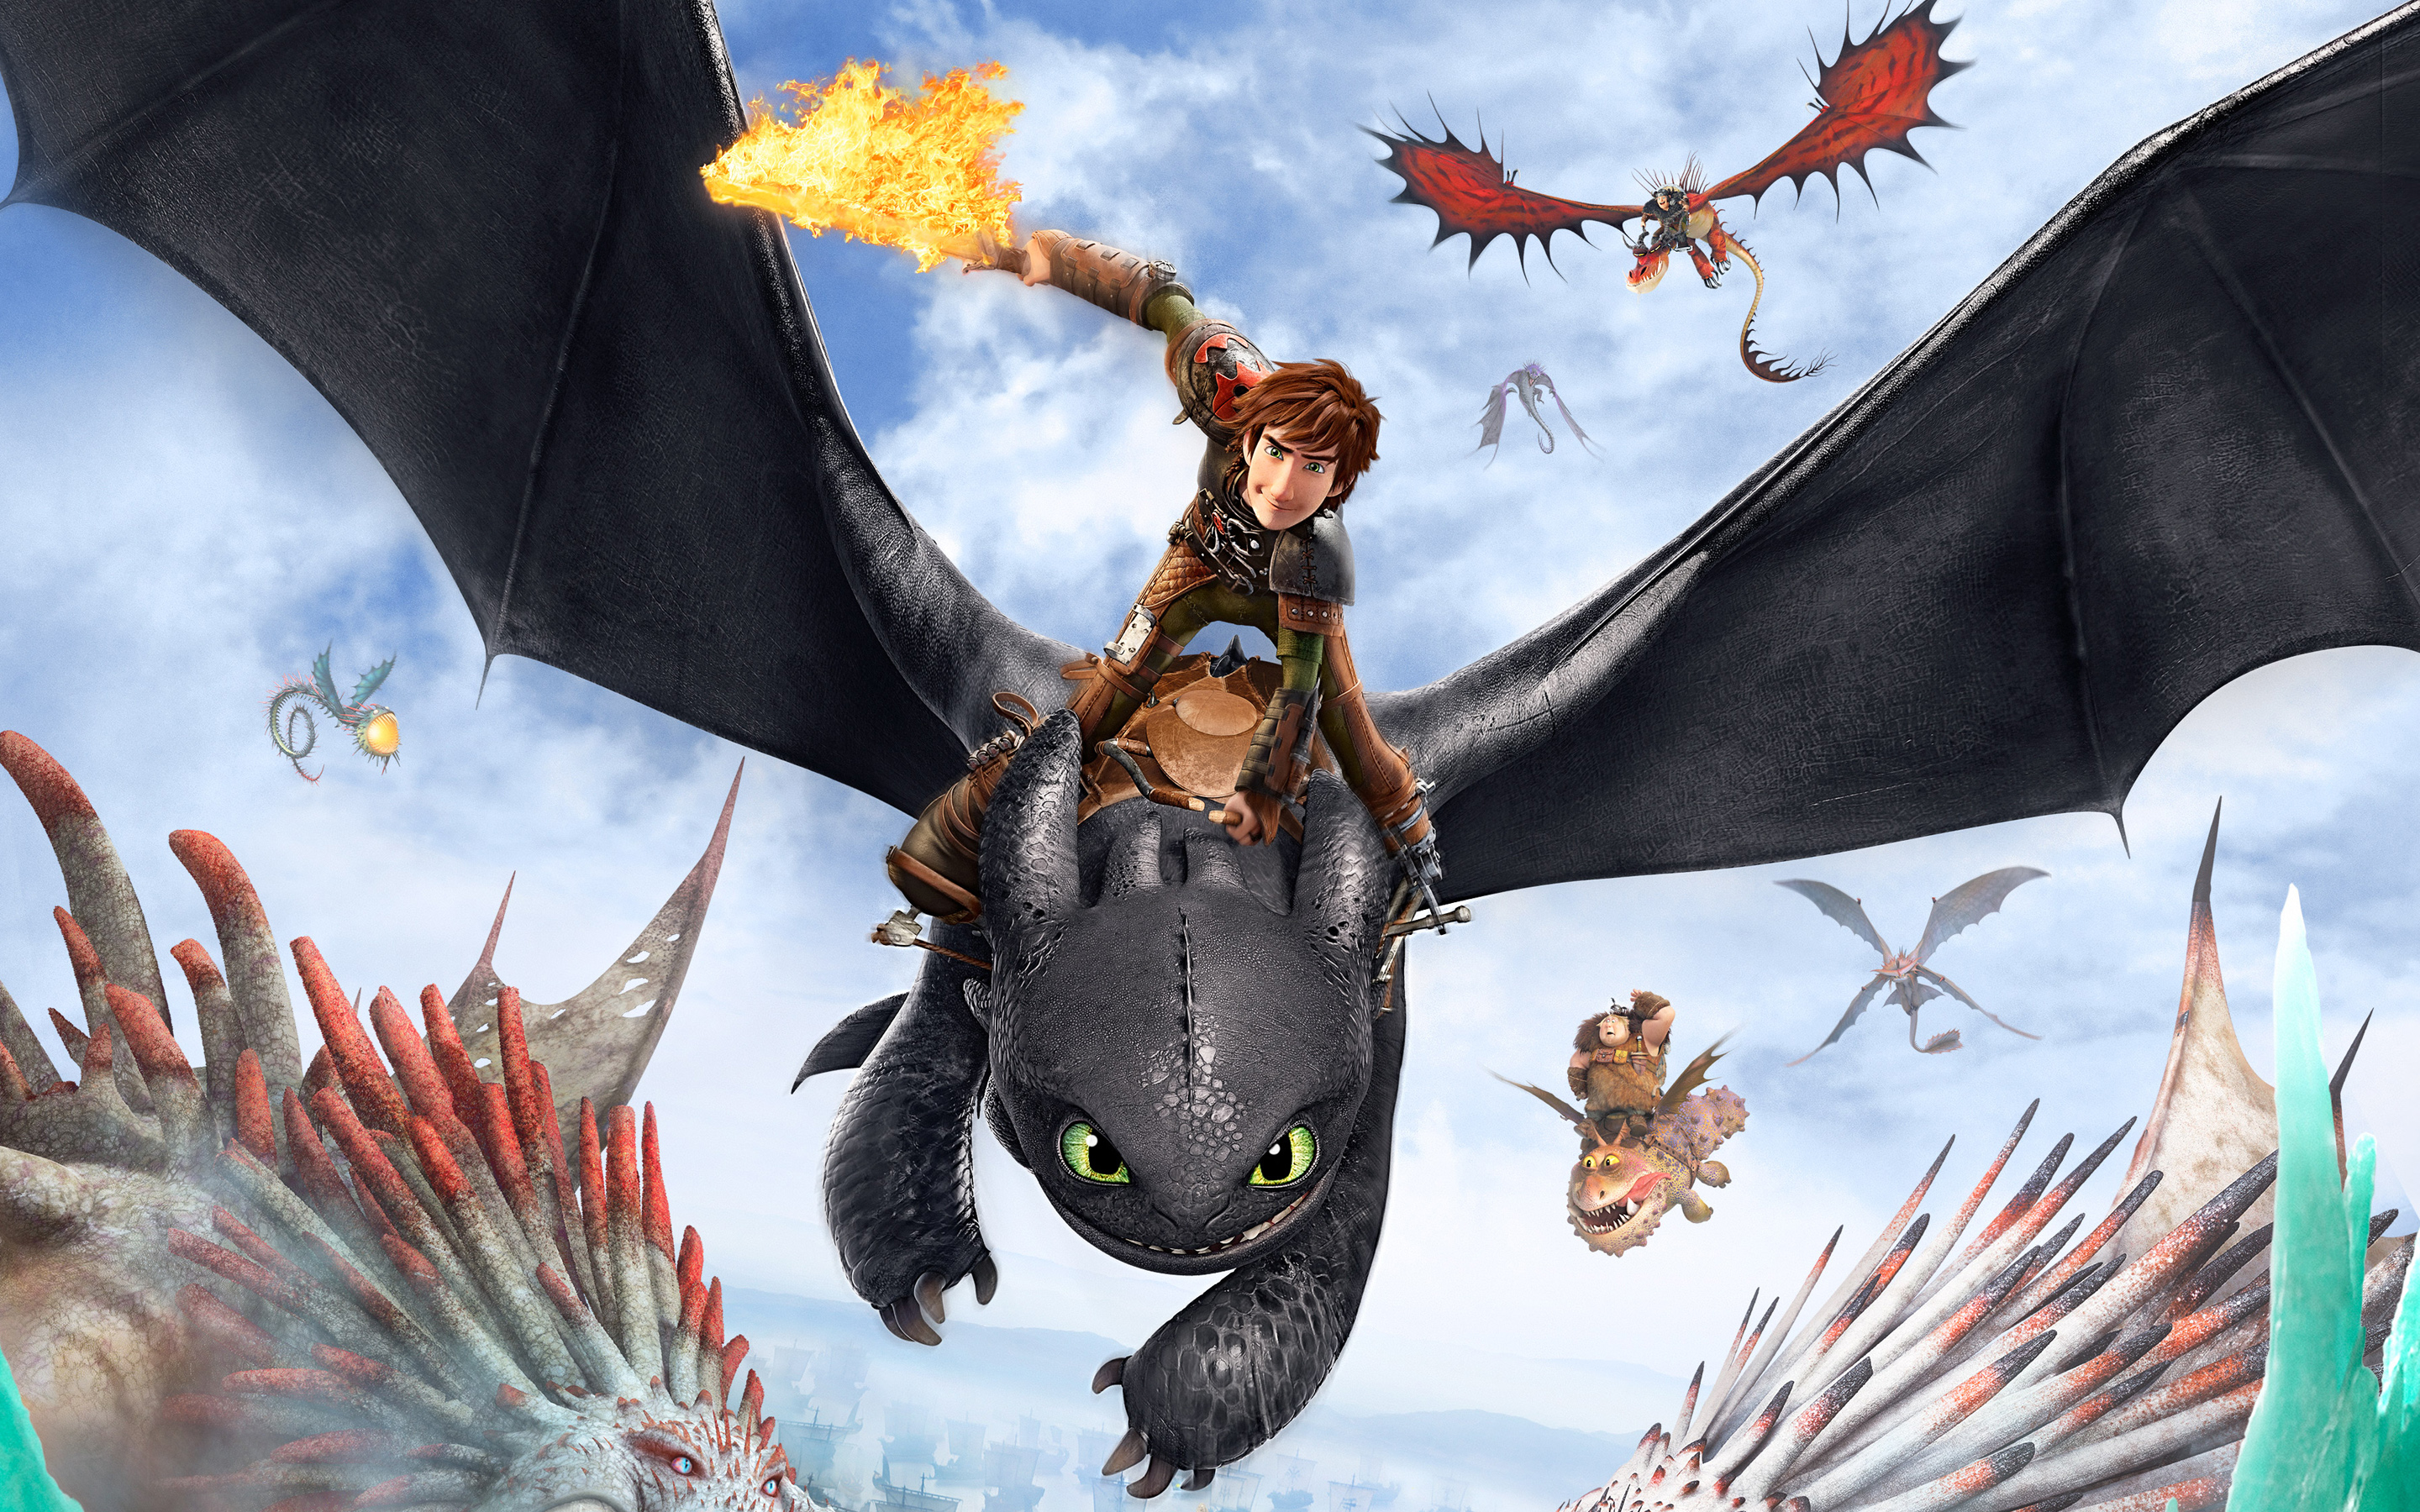 How to train your dragon 2 hd wallpaper background image toothless how to train your dragon wallpapers id533922 download ccuart Gallery